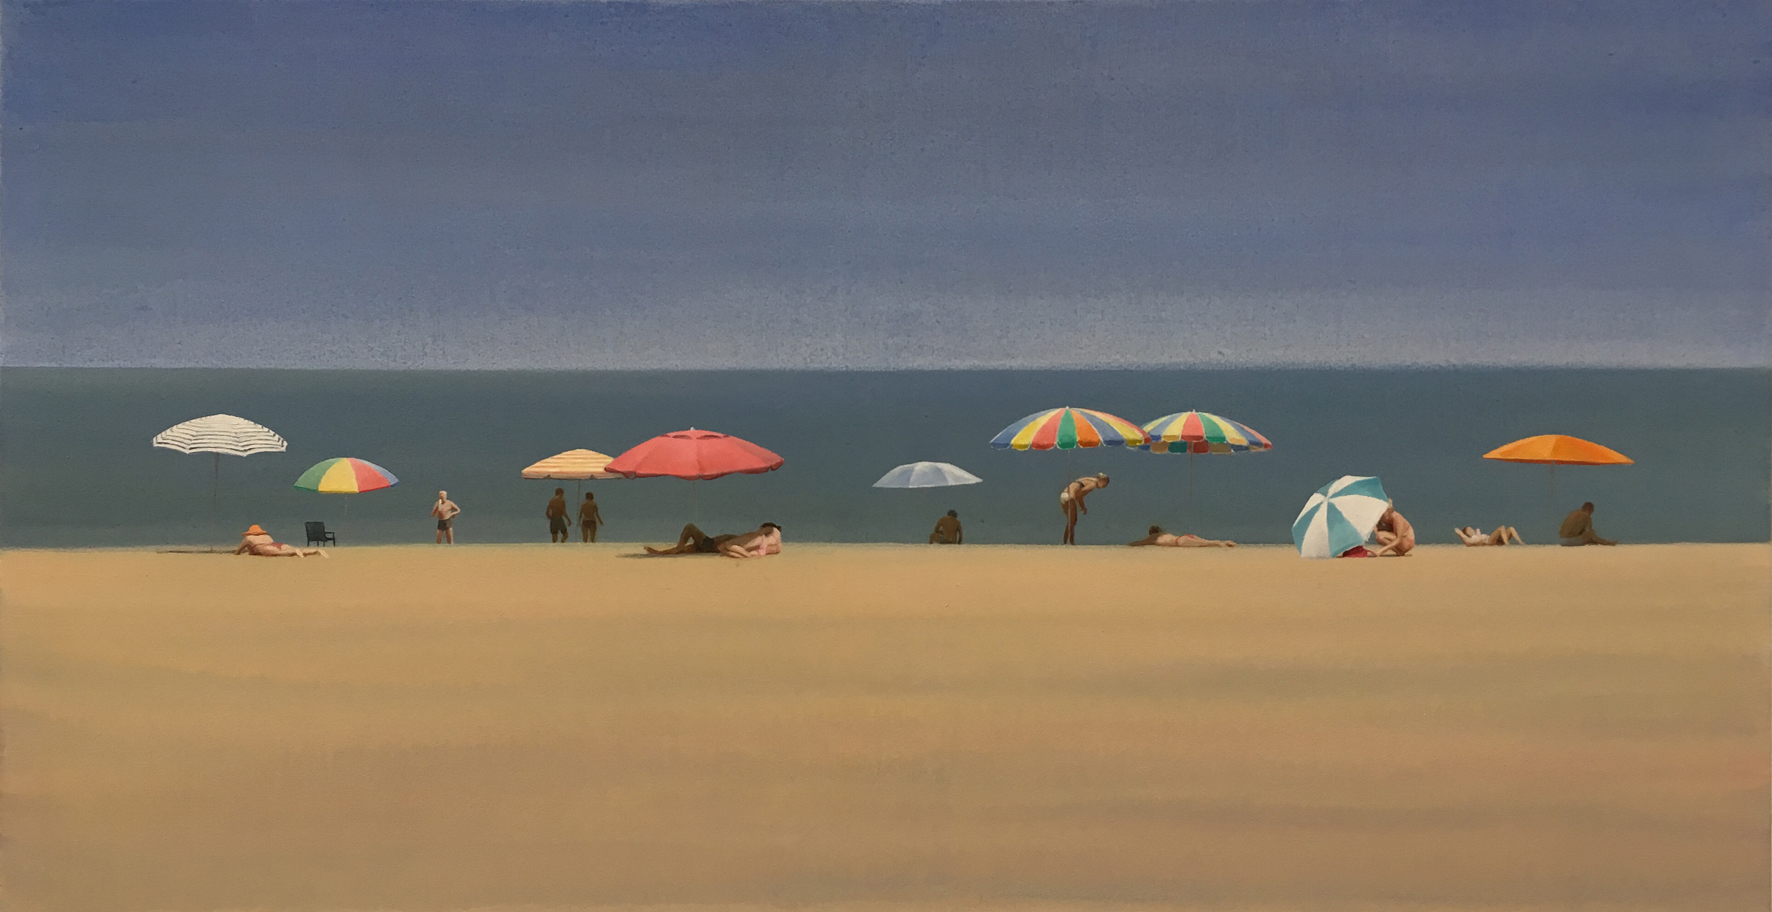 Beach 39 - Oil on Canvas - 61x117cm - David Edmond